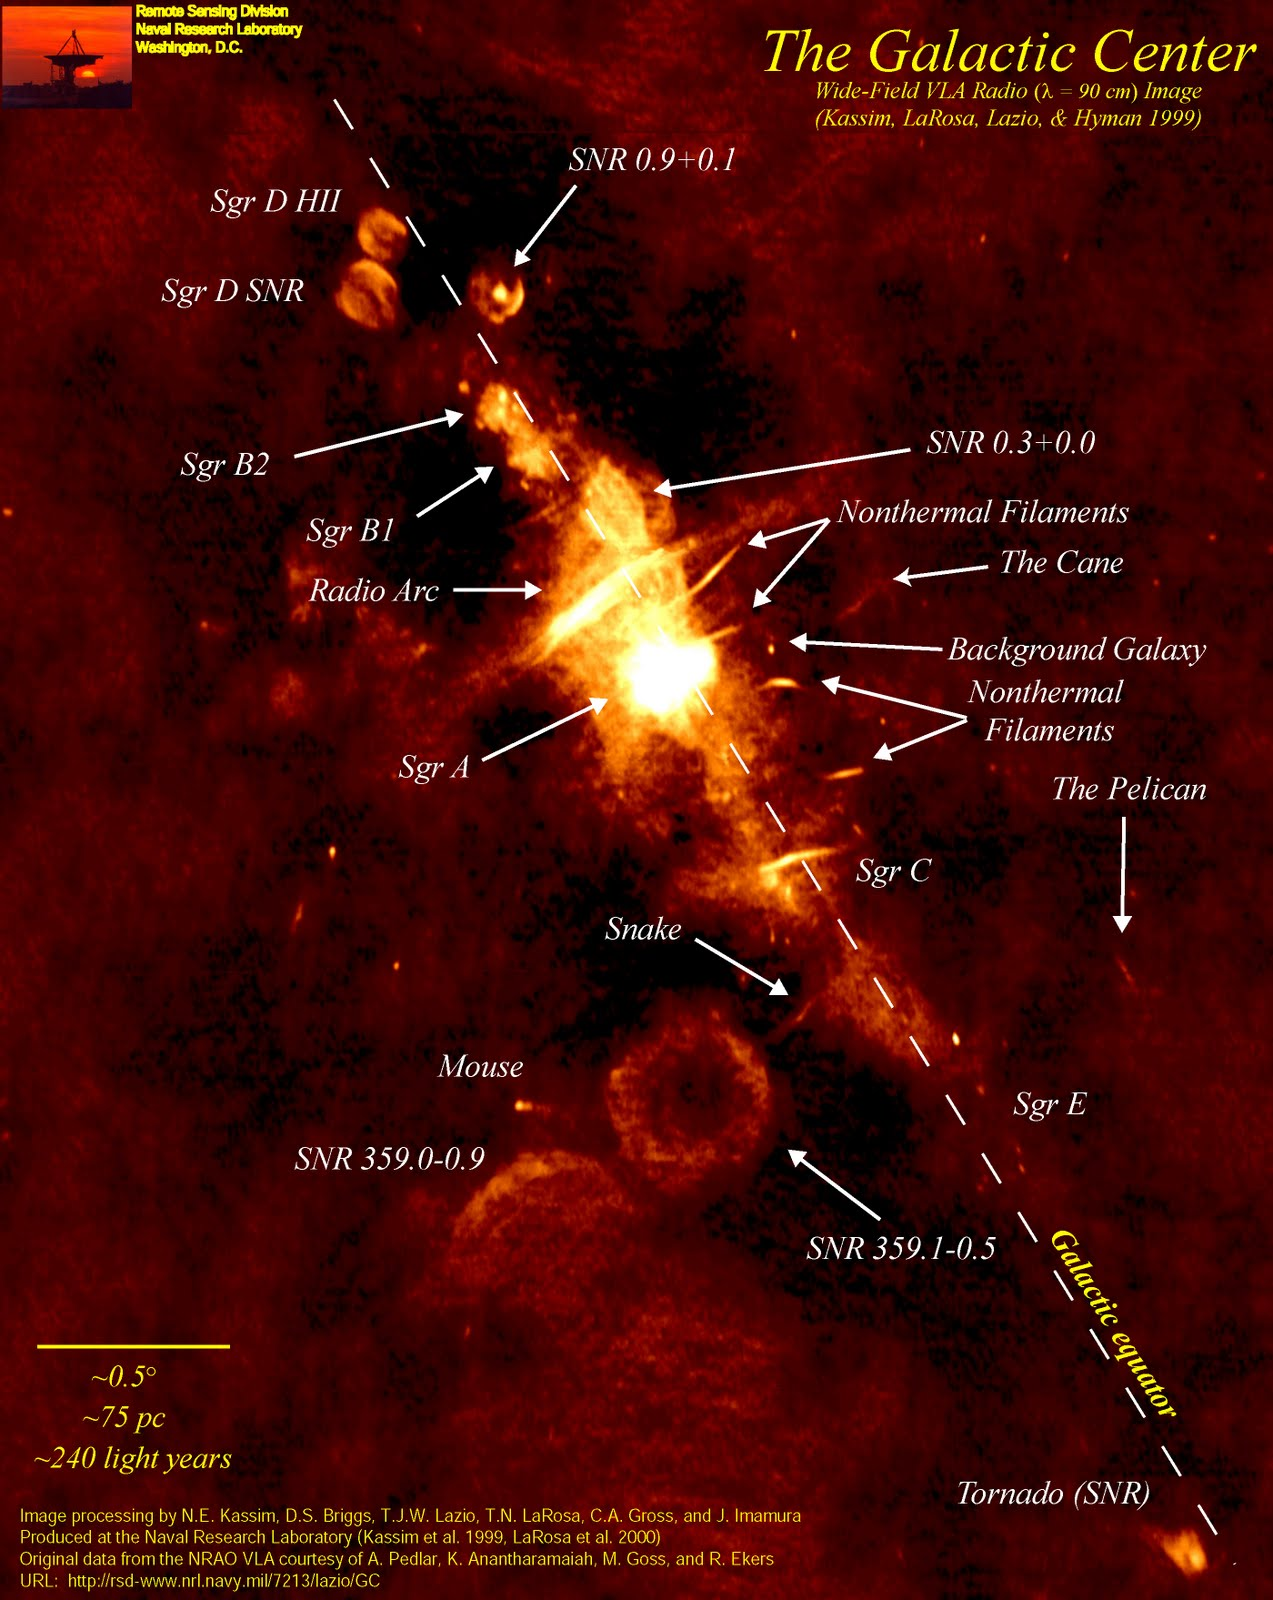 Astrology psychic spiritual laws dreams galactic center 2012 photo of the galactic center geenschuldenfo Images